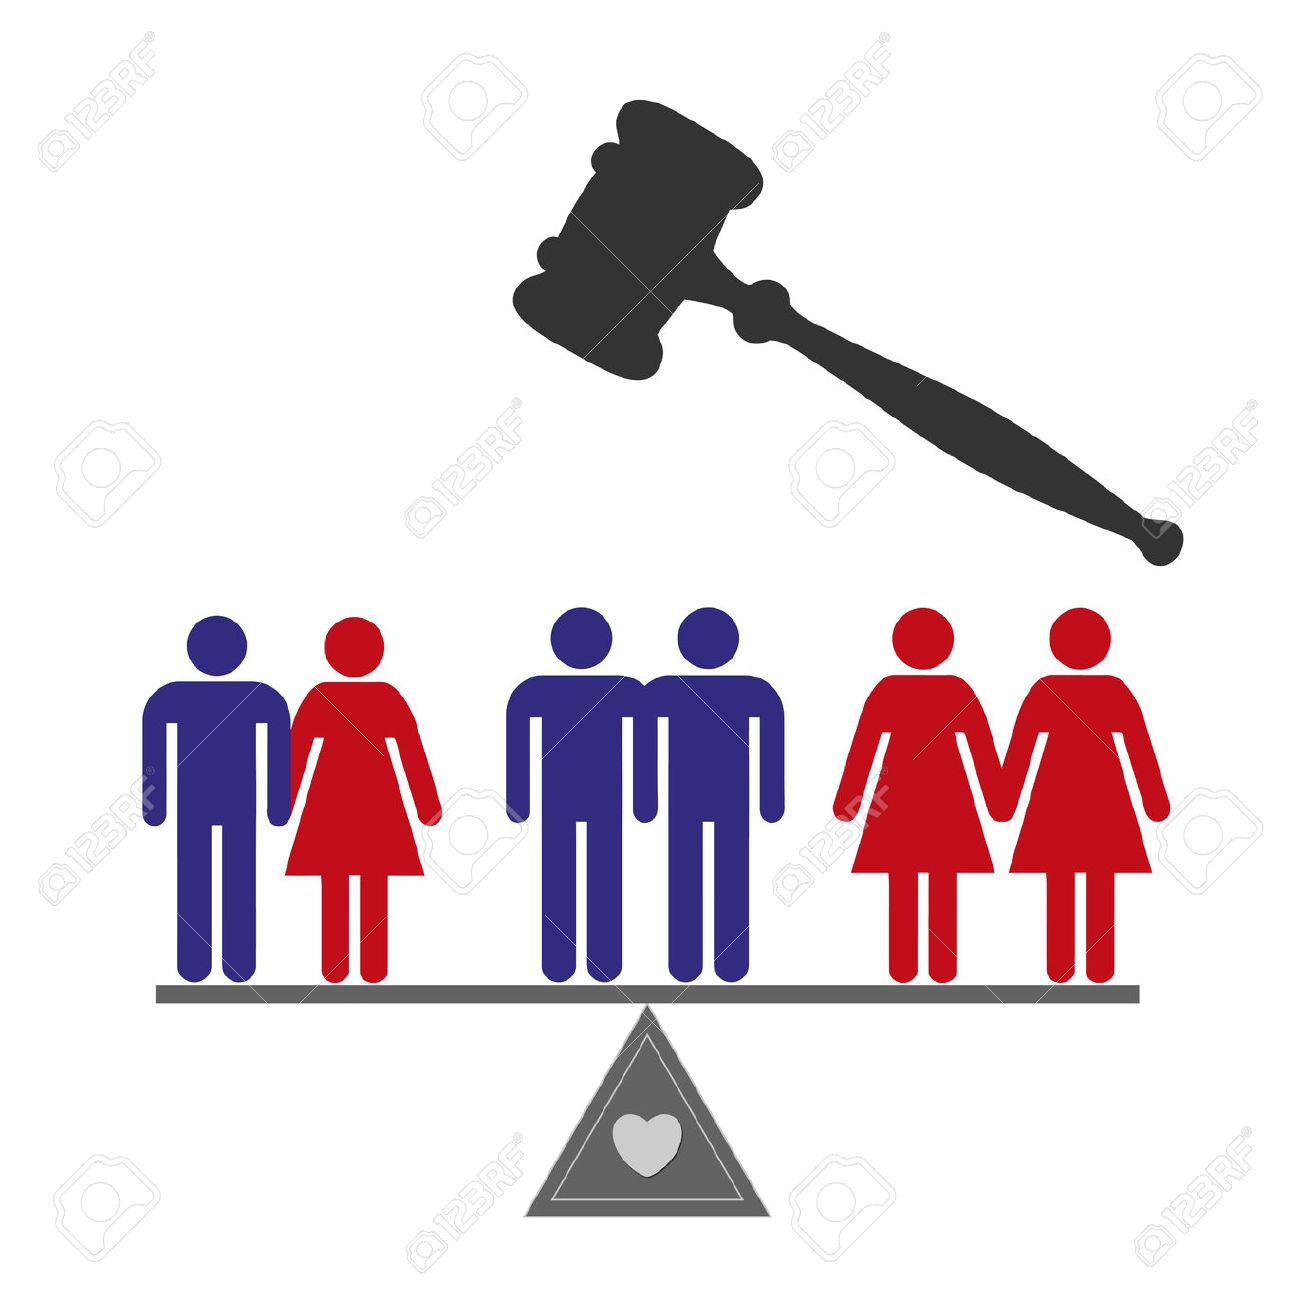 Gender Equality Stock Photos Royalty Free Gender Equality Images